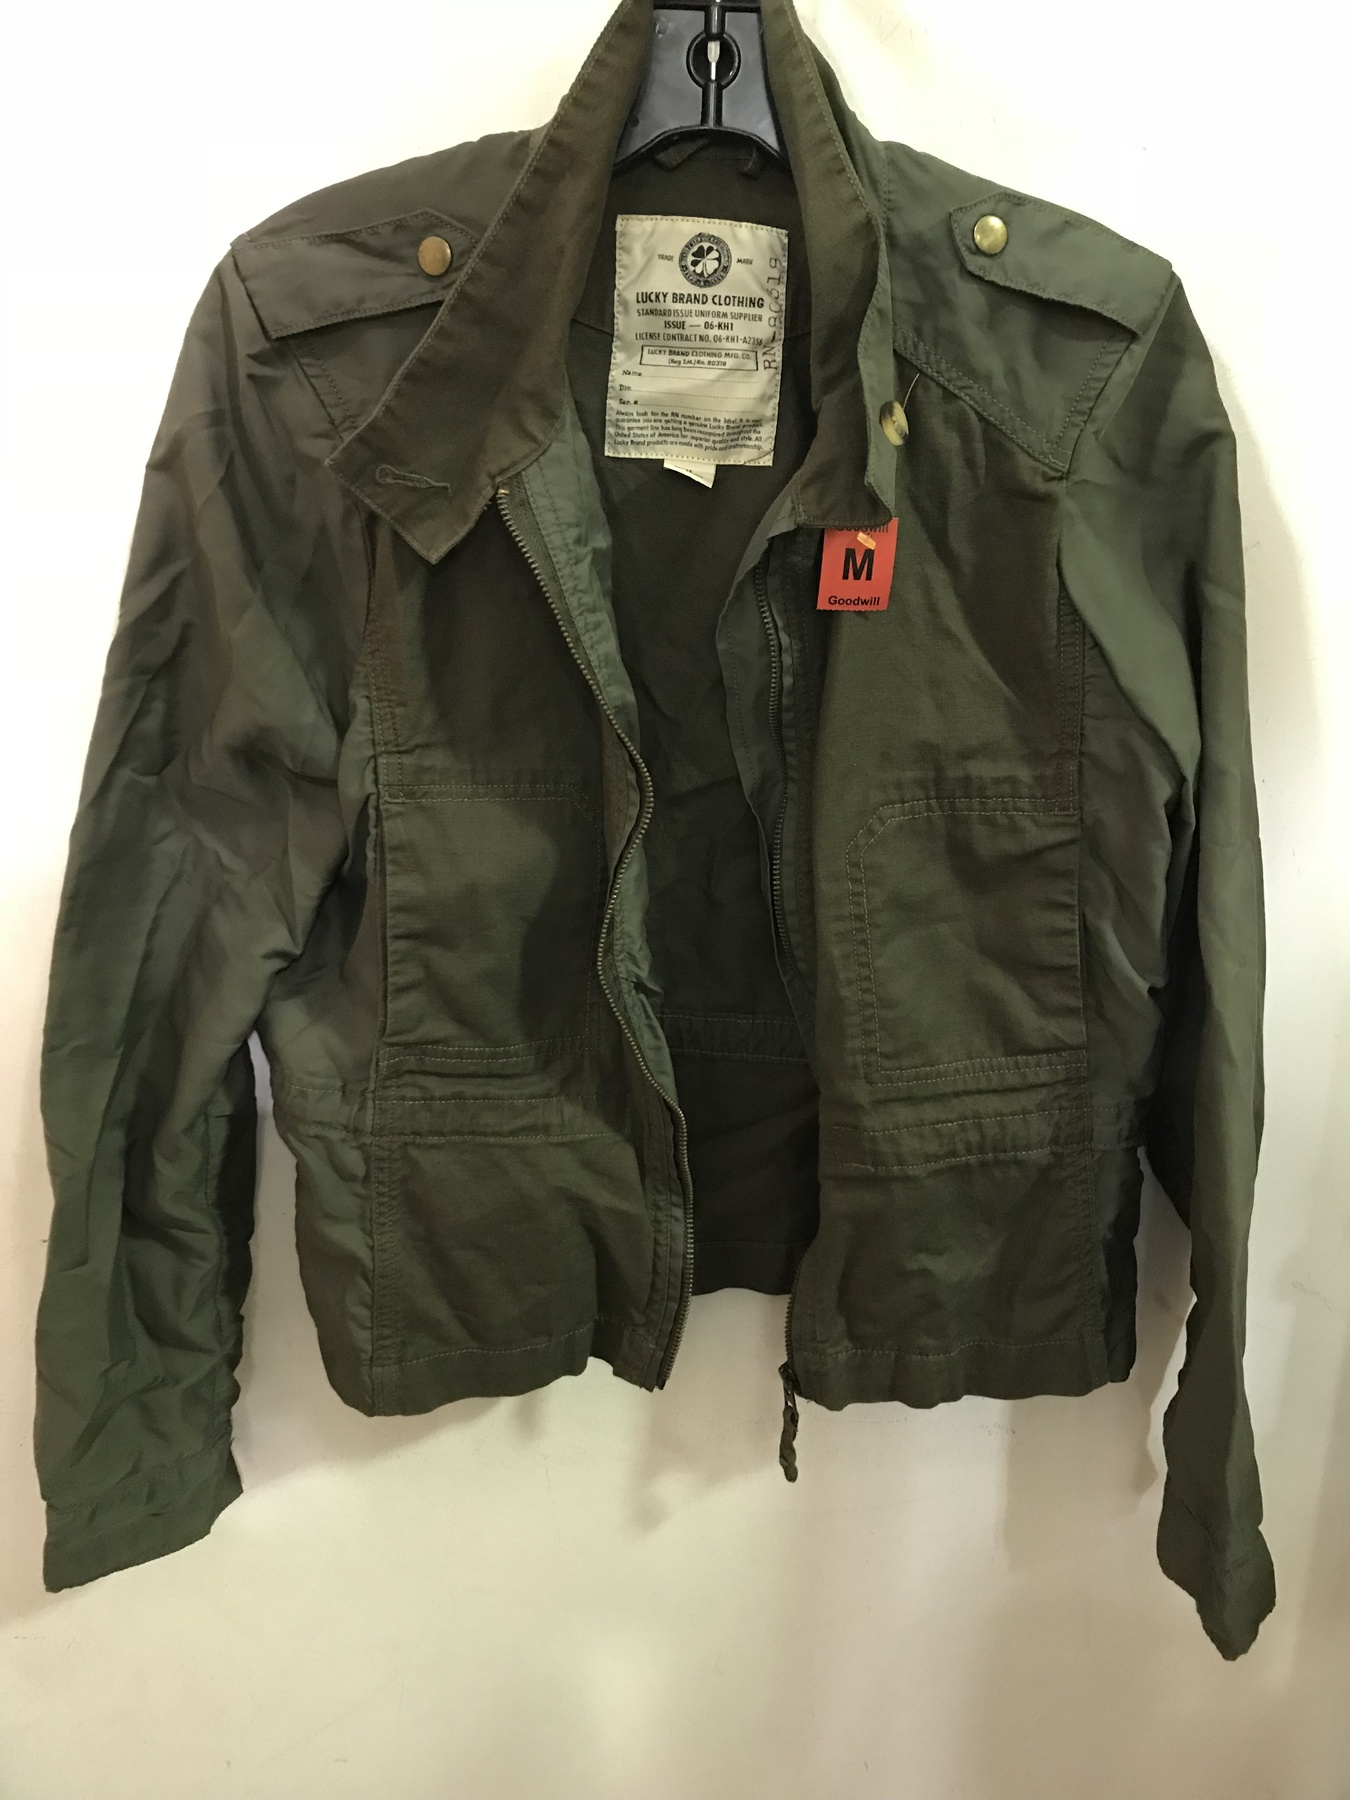 green Lucky Brand utility jacket found at Columbia Pike Goodwill